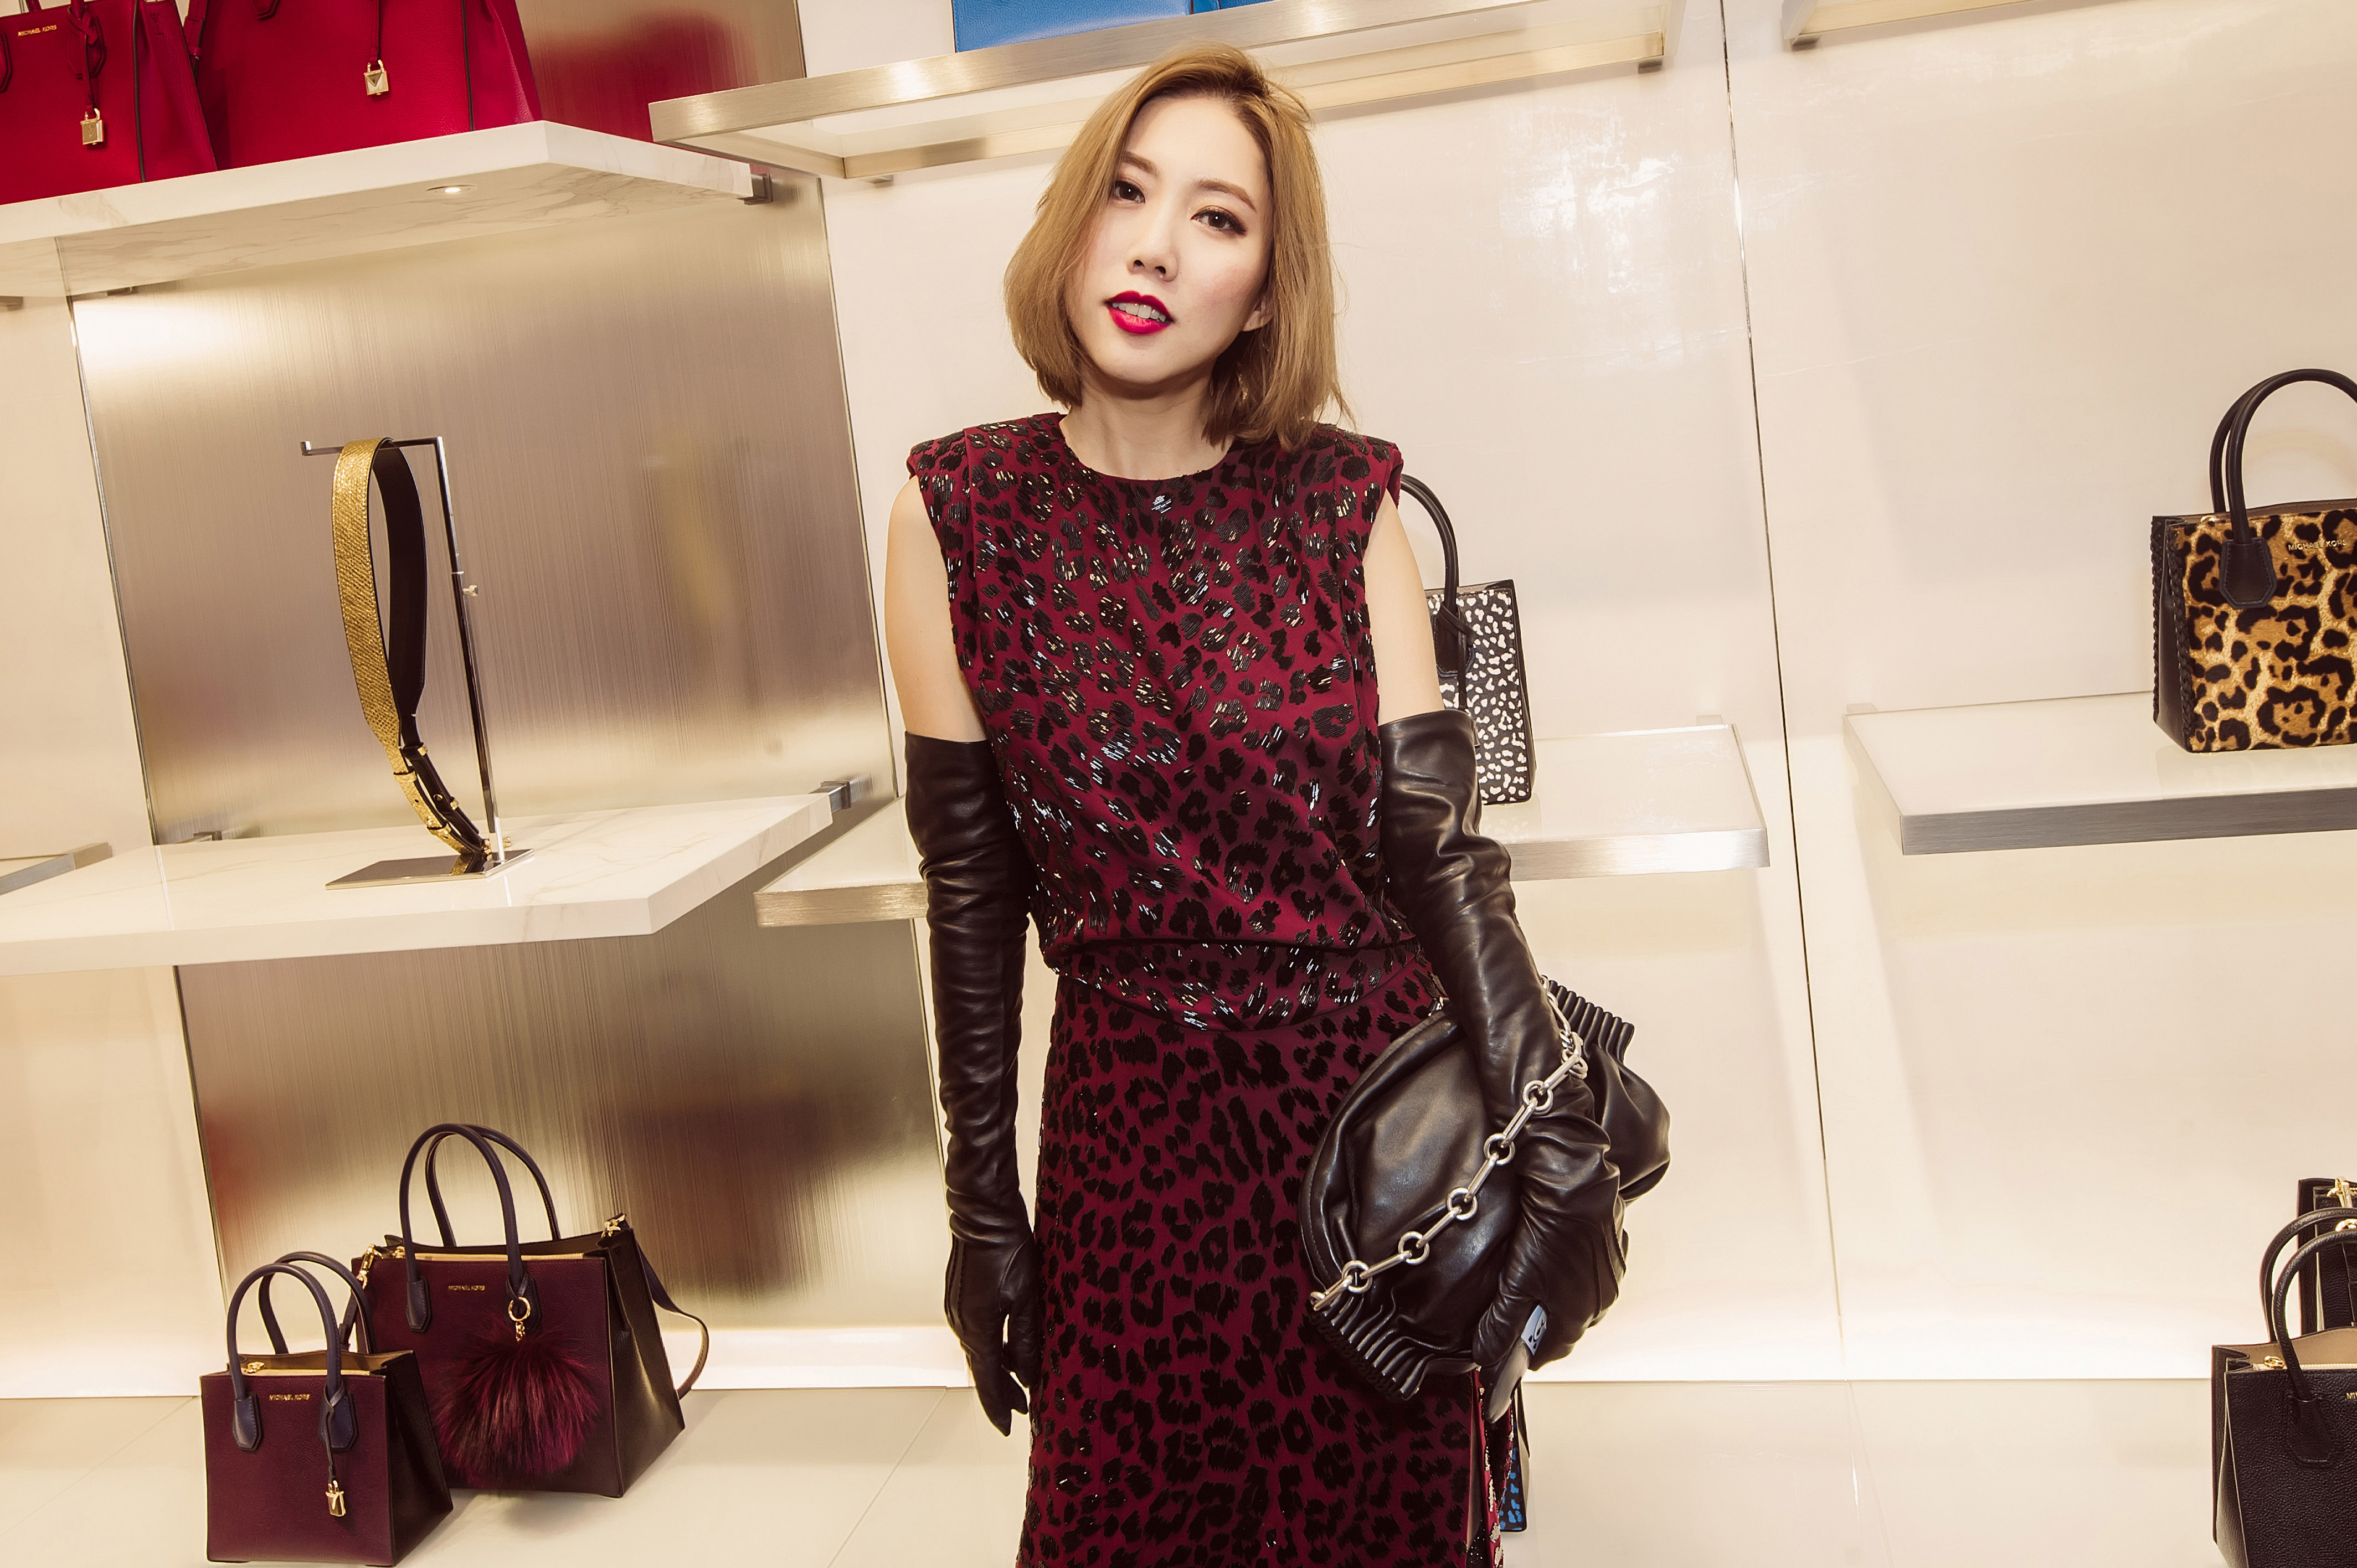 Best Dressed In Hong Kong October 2017 Lifestyle Asia Luggage Tag Hk Love Pink A Leopard Pattern Doesnt Always Have To Be Brown And Black Switch It Up With Dress That Comes Rich Burgundy Shade Like The One Faye Is Wearing